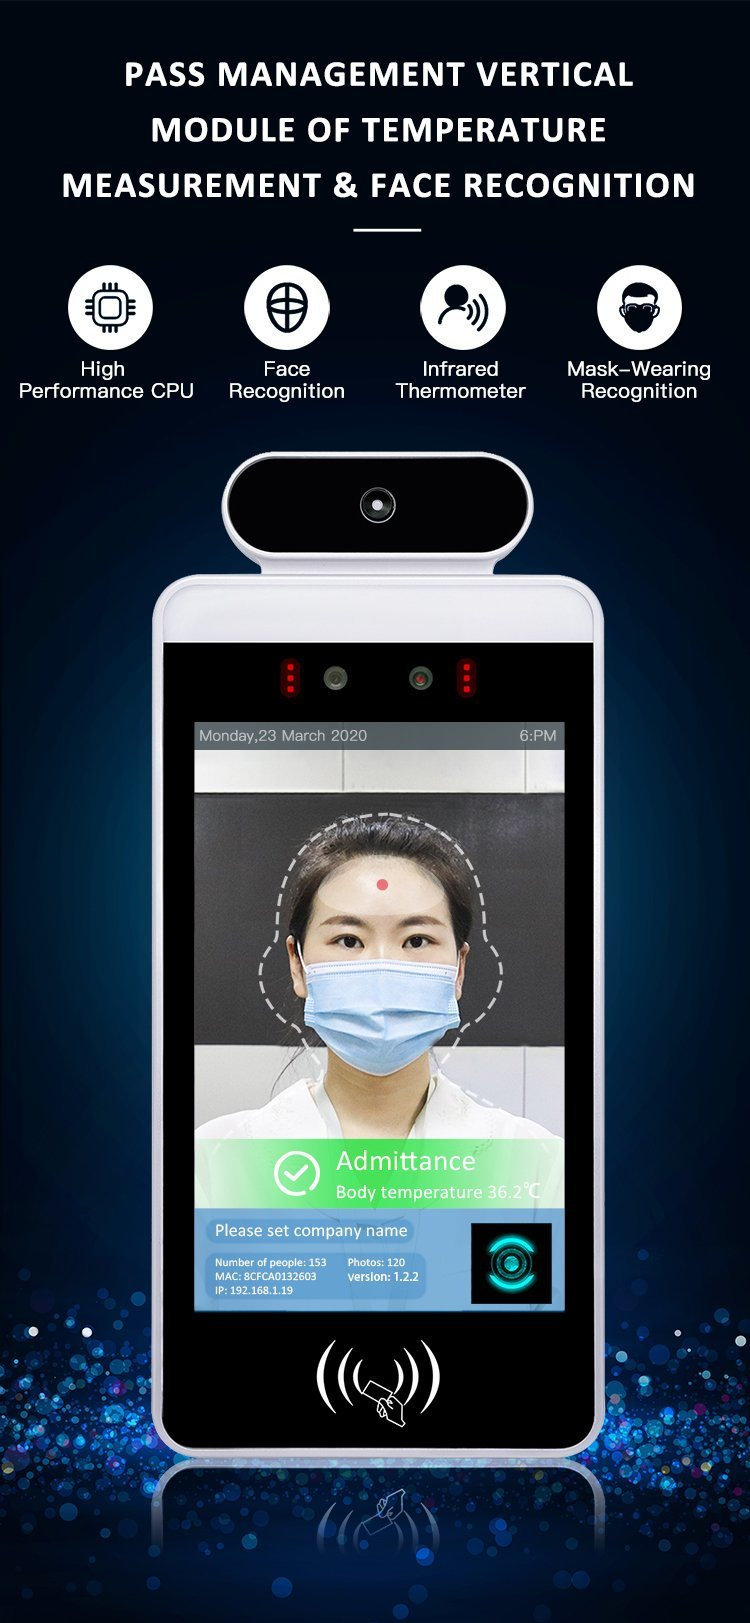 Multi-Language LIQIU Intelligent Face Recognition Temperature Measuring System 8 Inch LCD Full Screen Access Control Punch Card Machine for Office Building Attendance Management Platform